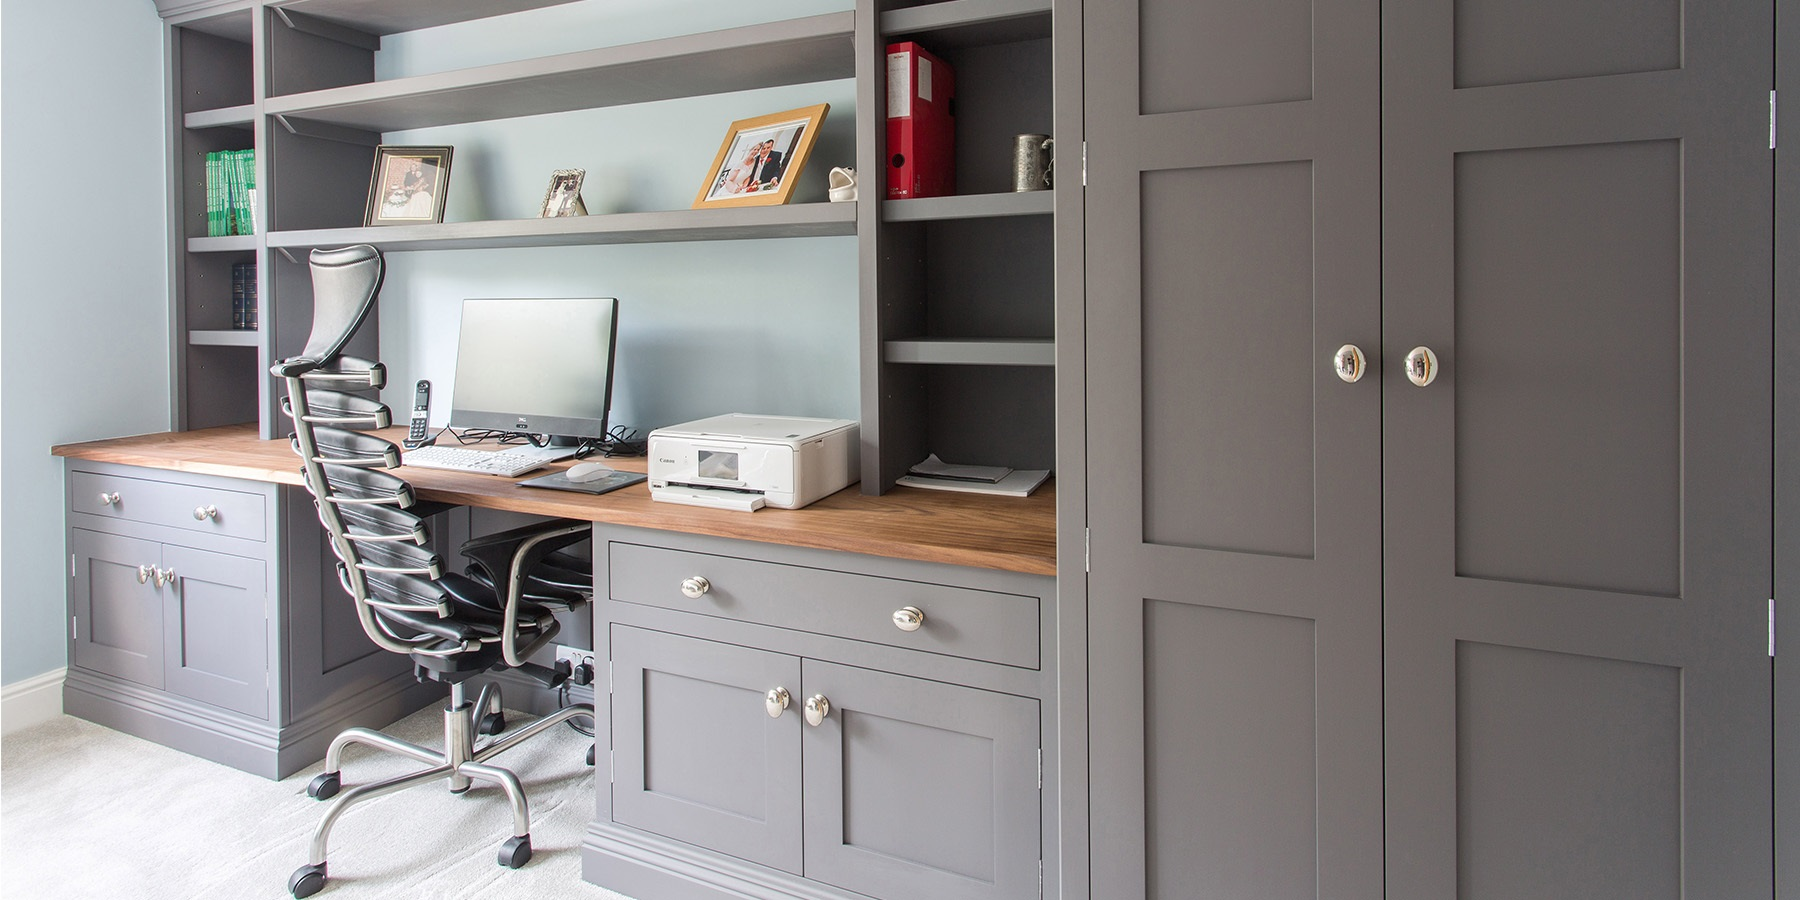 Bespoke Home Office Furniture - Handmade grey home office furniture and storage solutions.